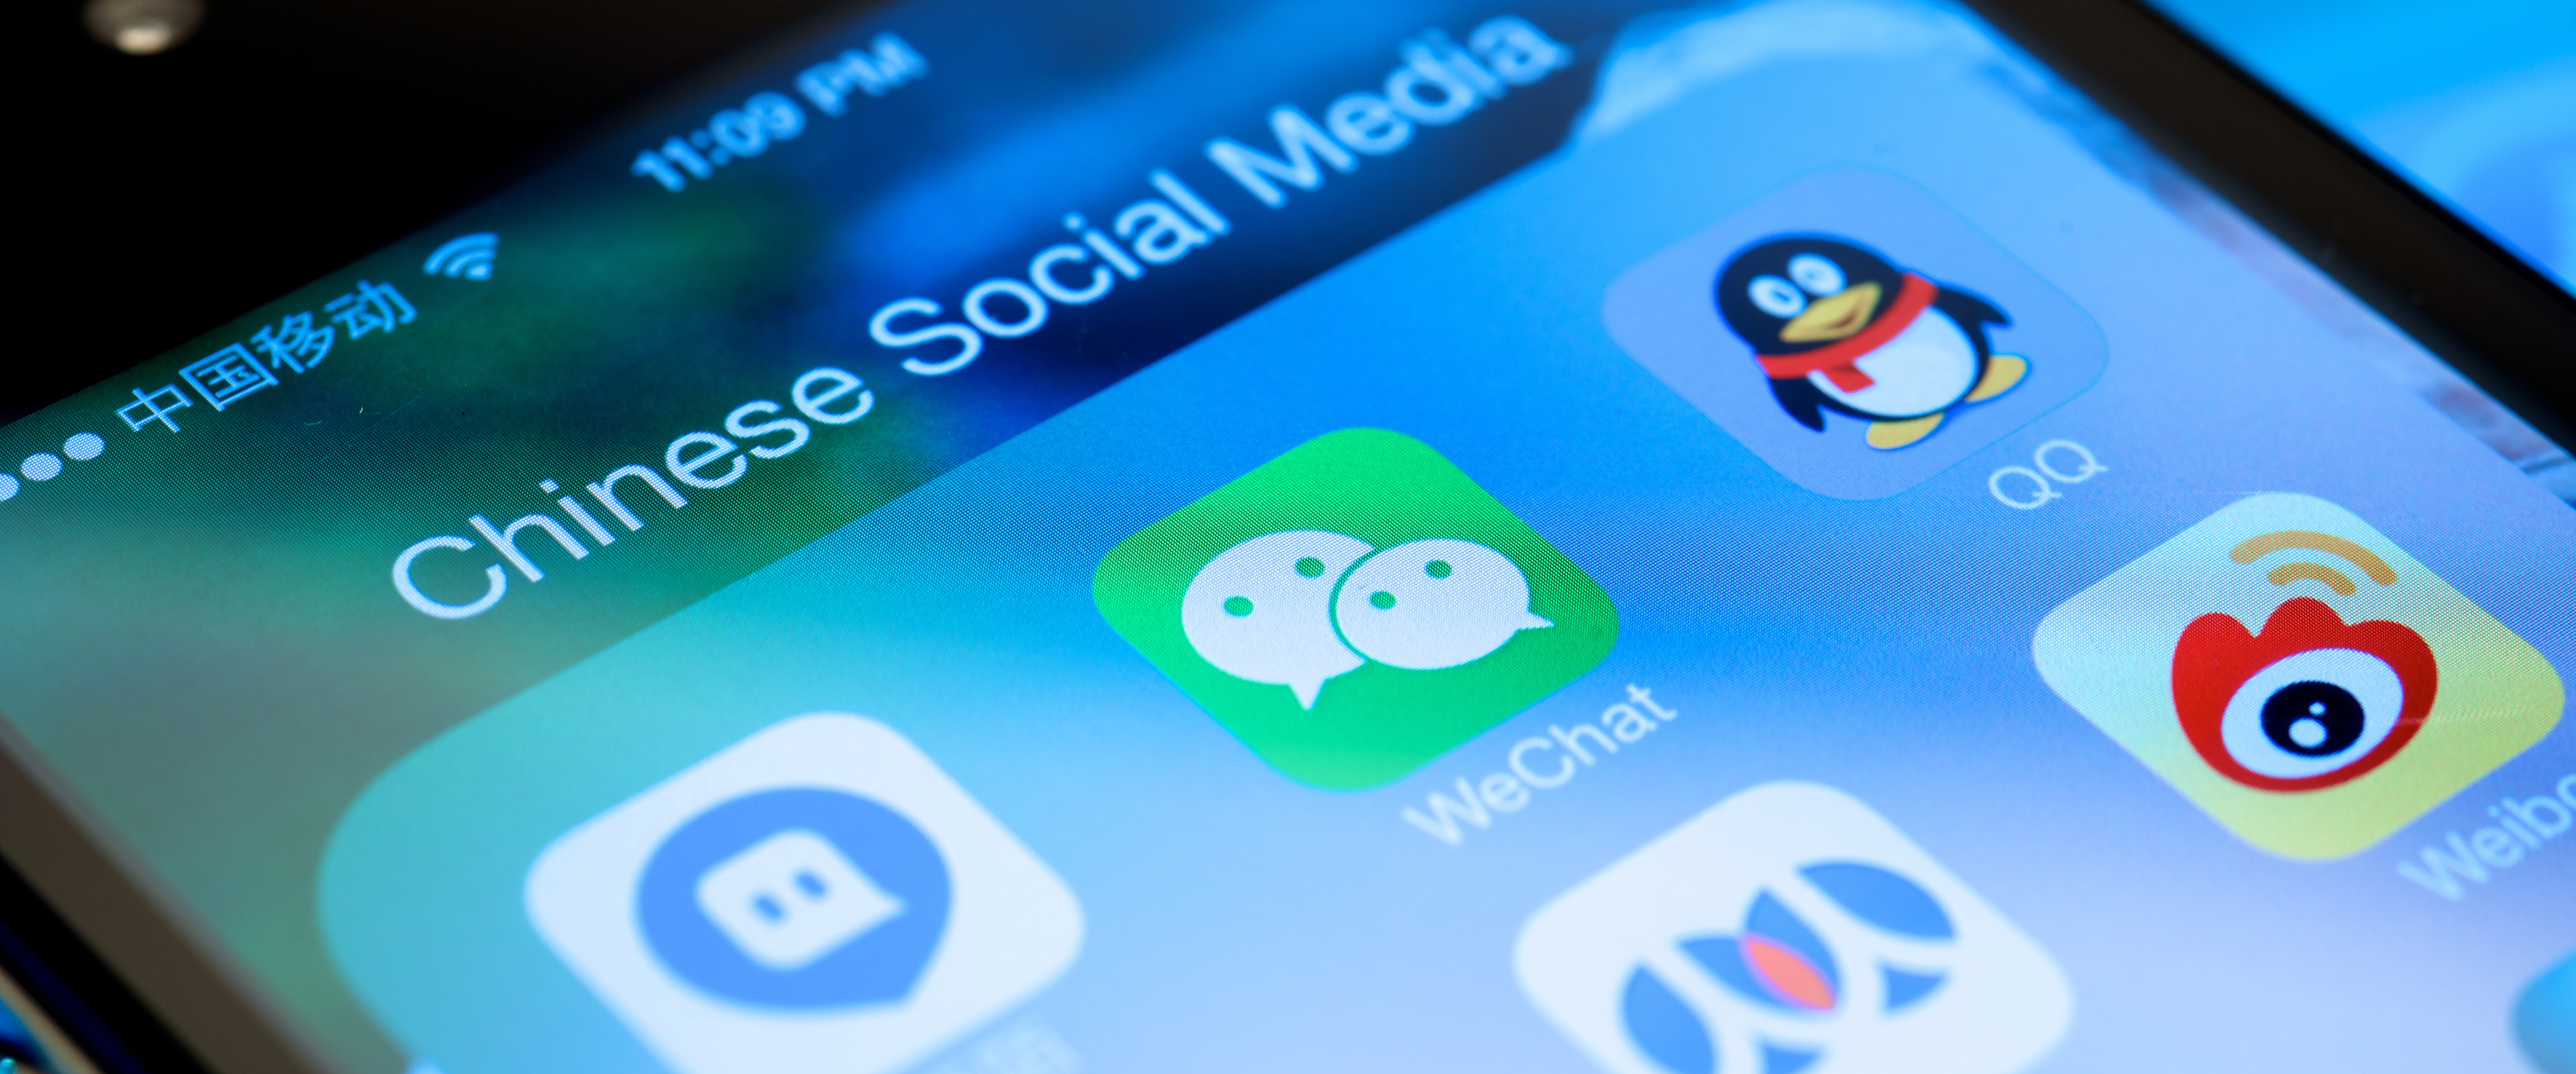 WeChat: the most powerful end-to-end marketing channel on earth?